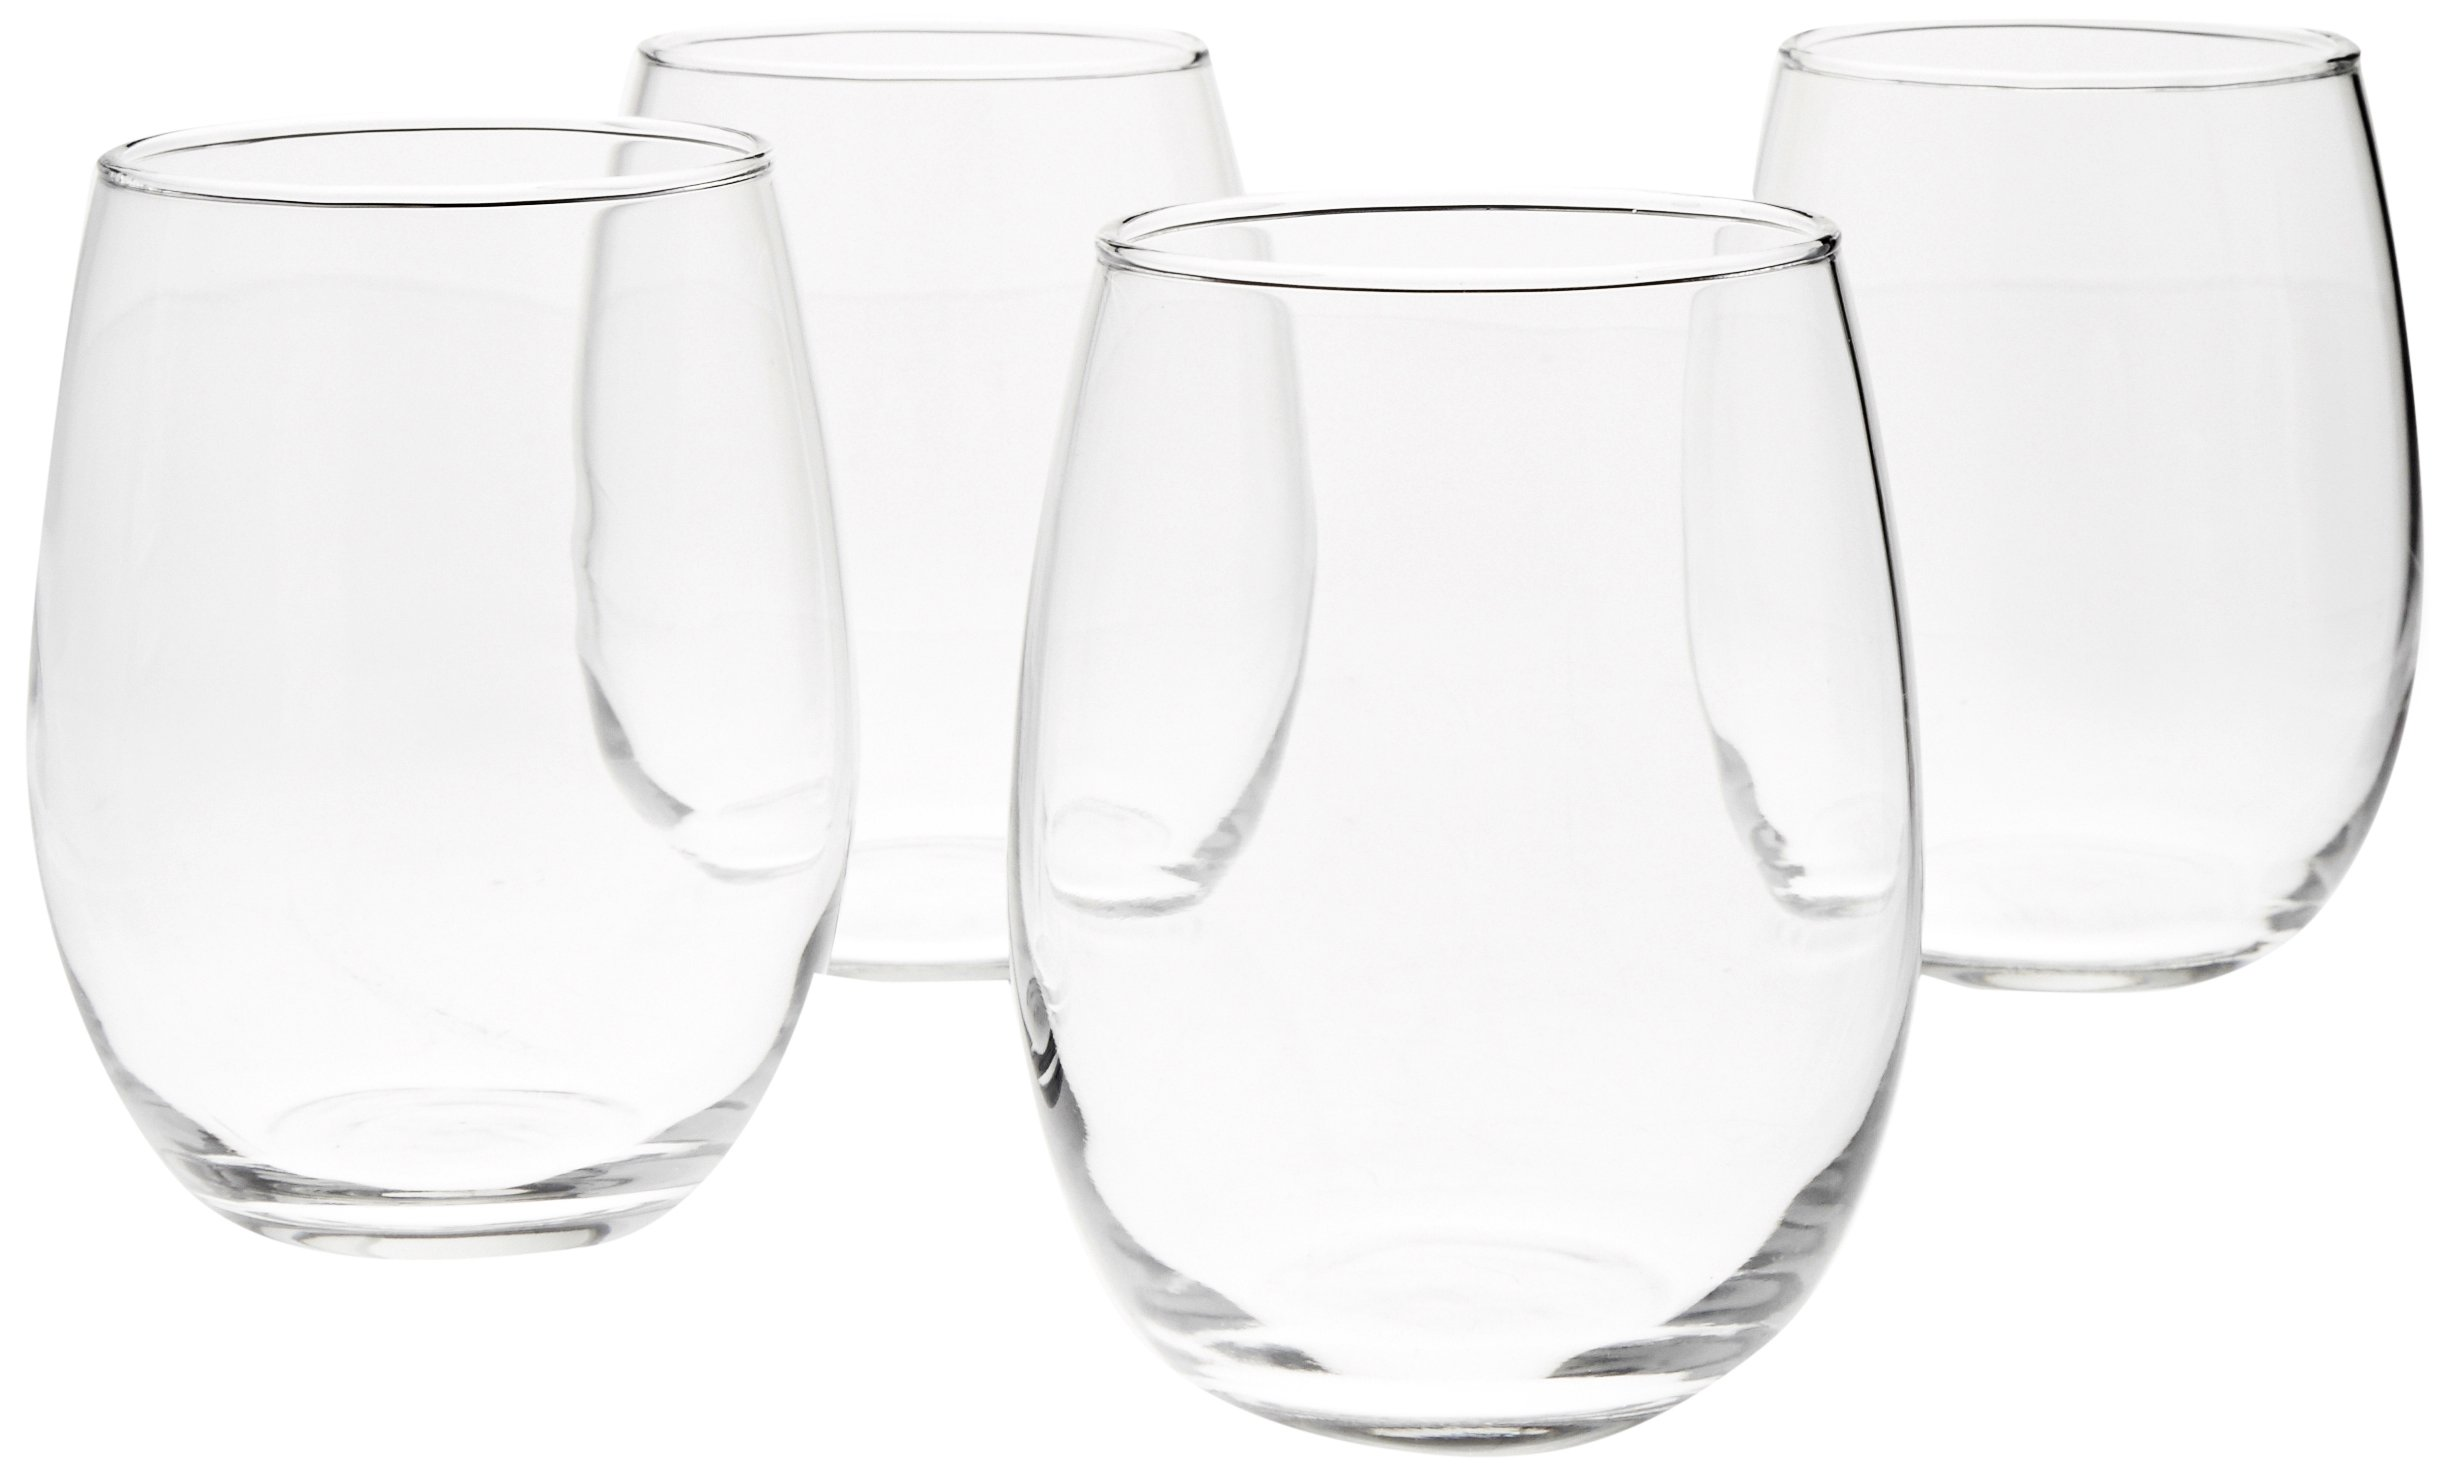 Amazon Com Amazon Basics Stemless Wine Glasses Set Of 4 15 Oz Wine Glasses